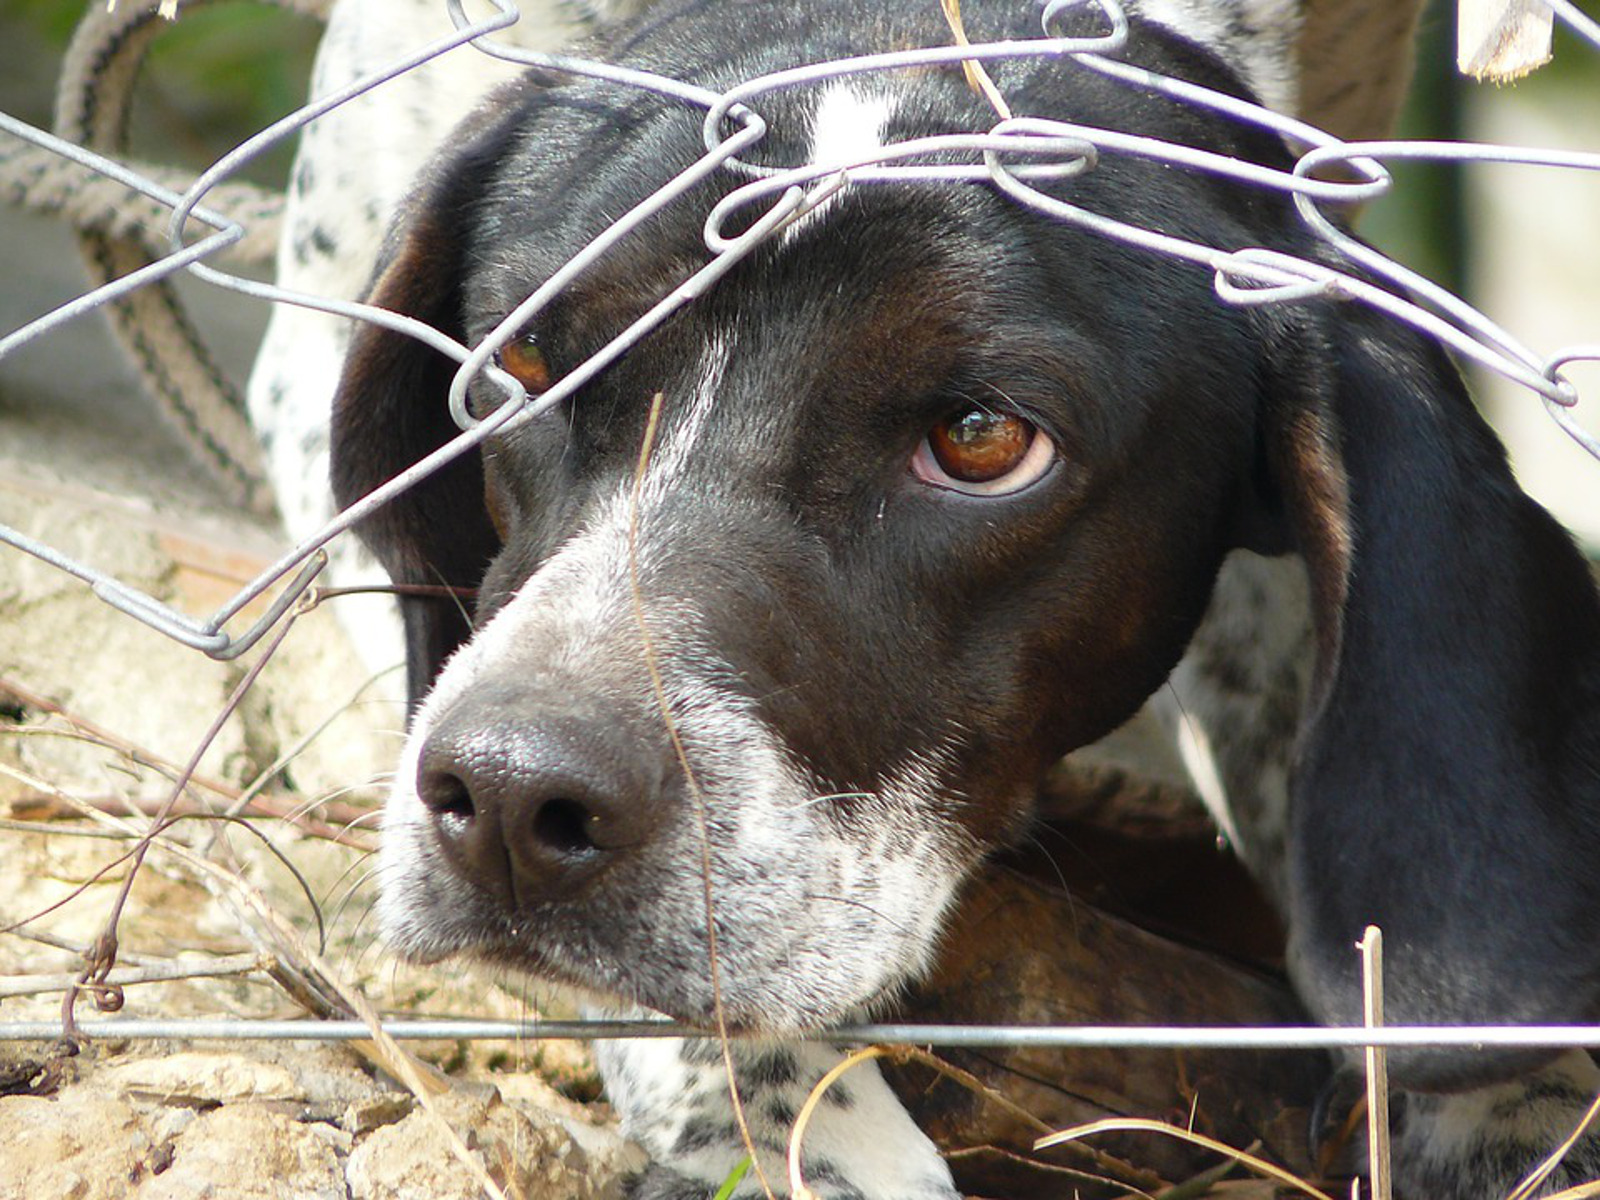 Support This Petition to End the Sale of Puppy Mill Dogs in Pet Stores!